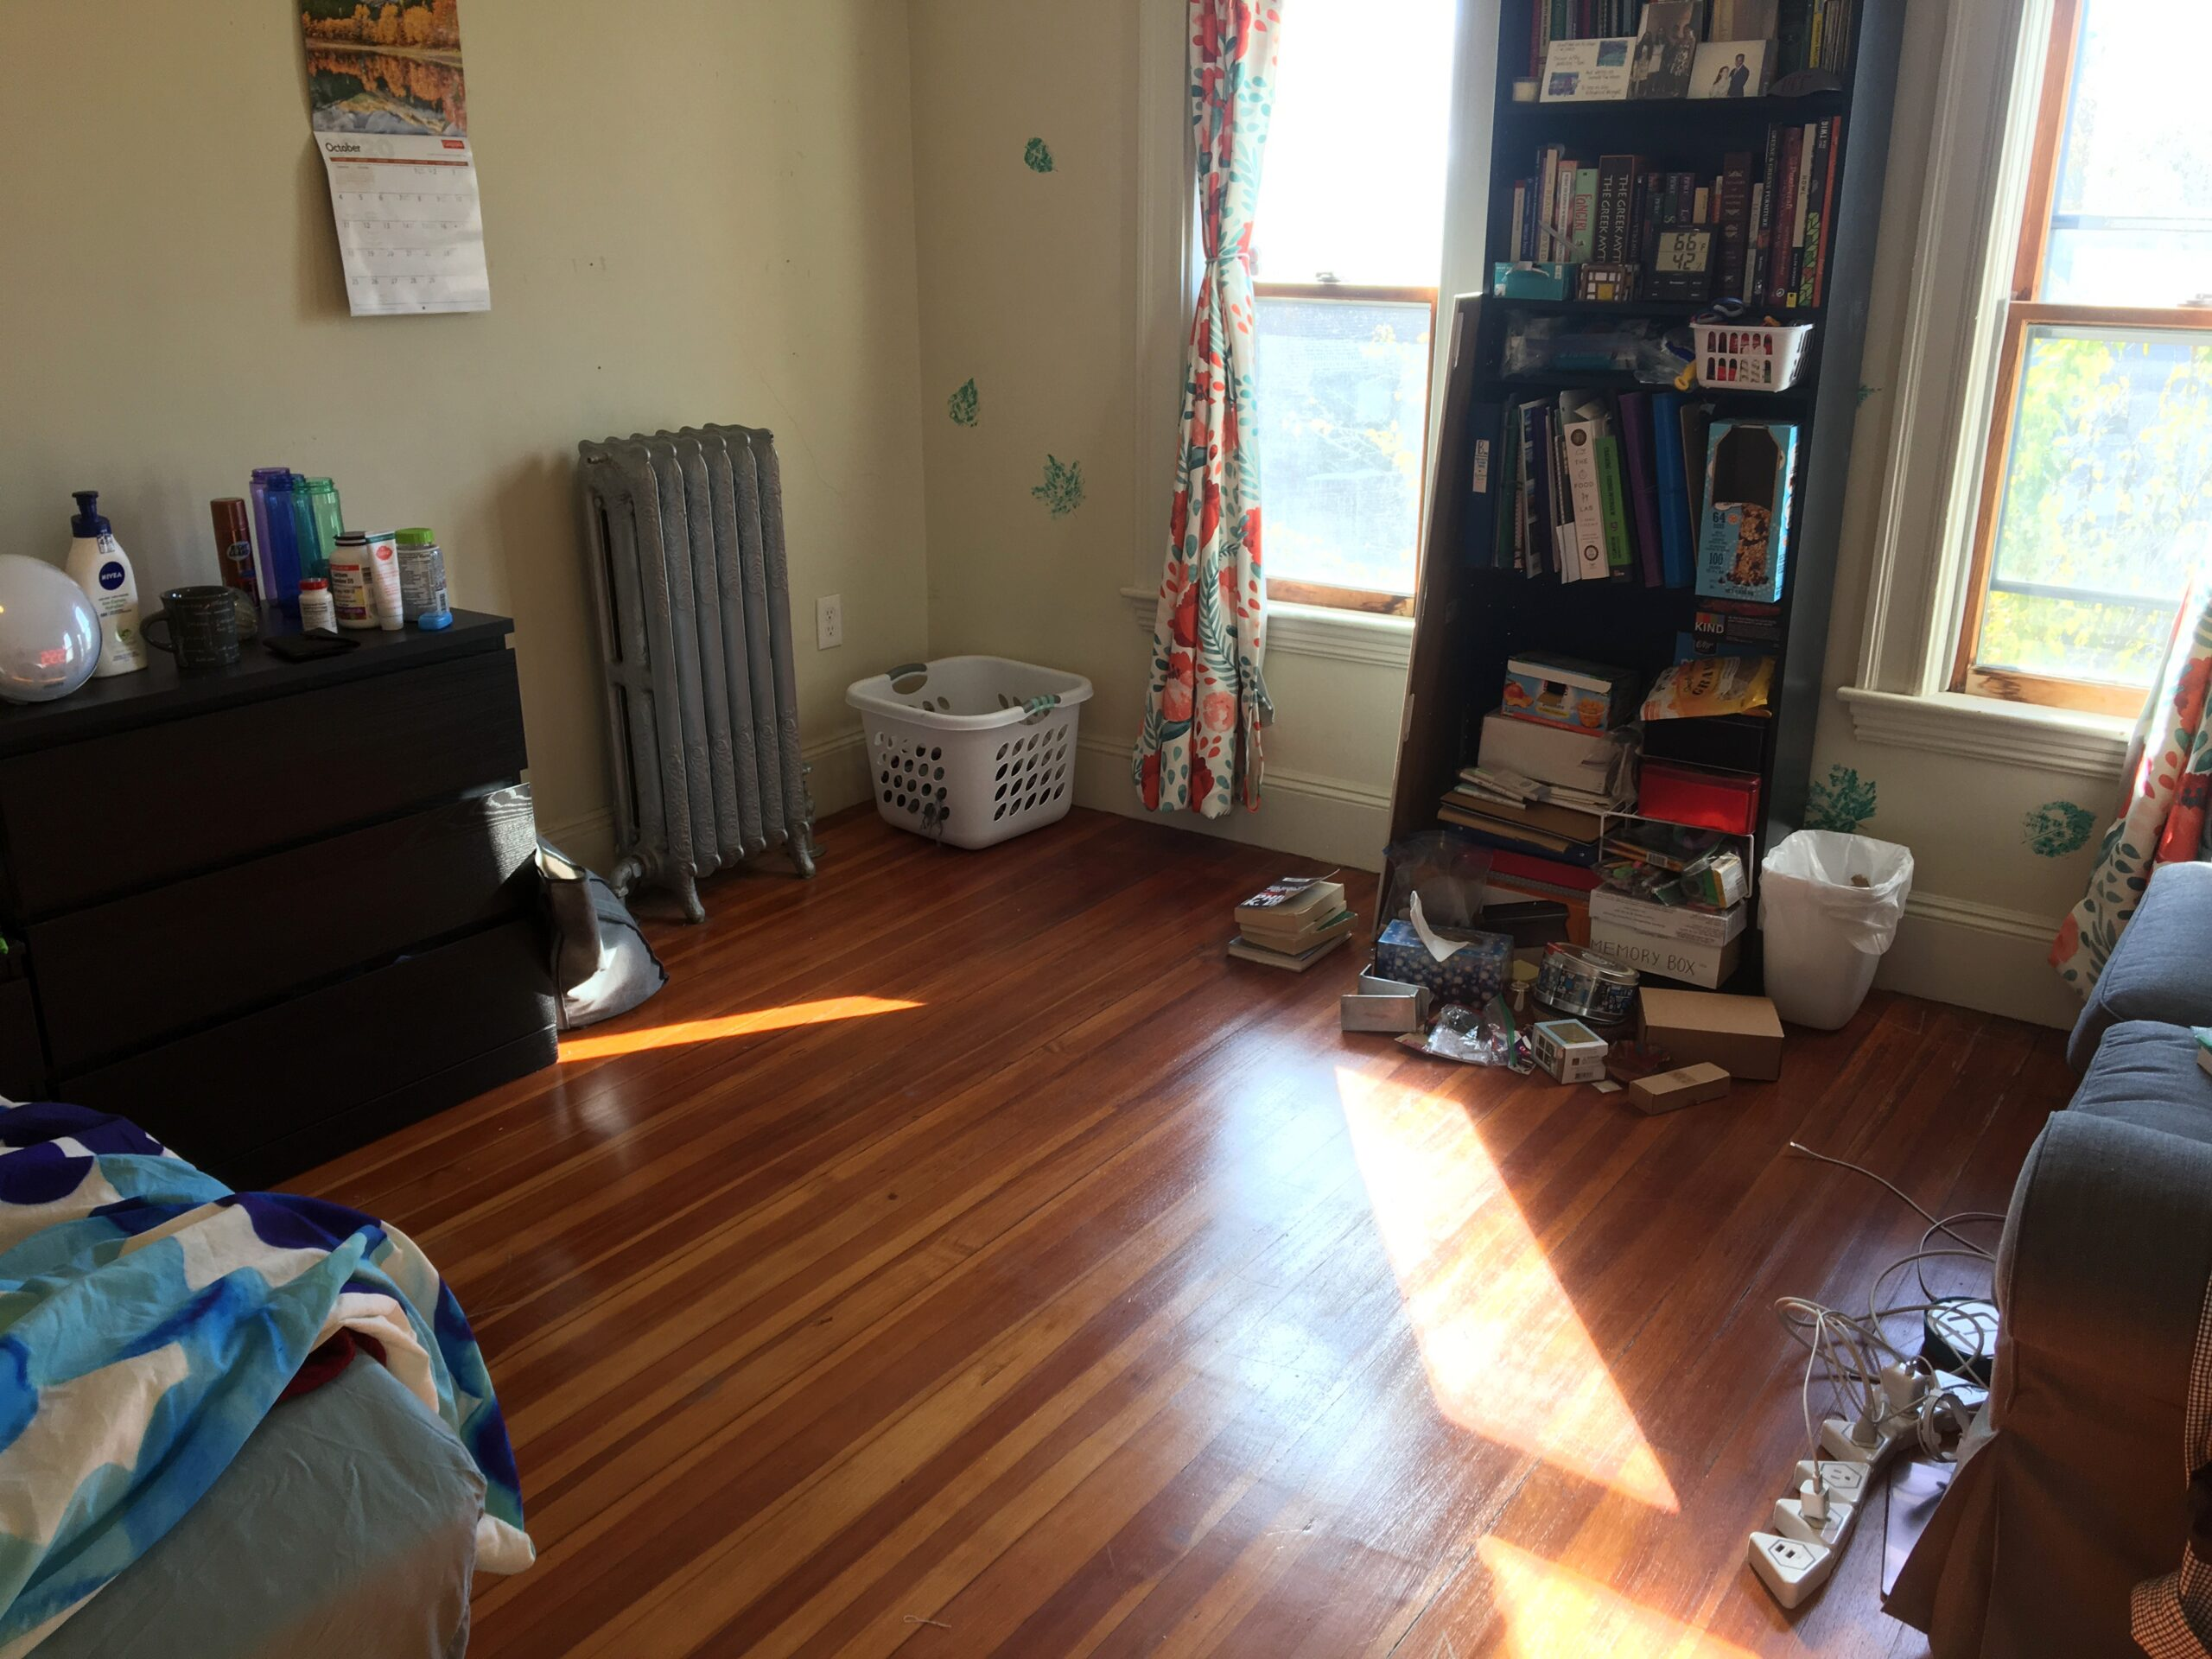 My room. It is pretty clean, a substantial part of the floor is visible, and sunlight is streaming through the windows.